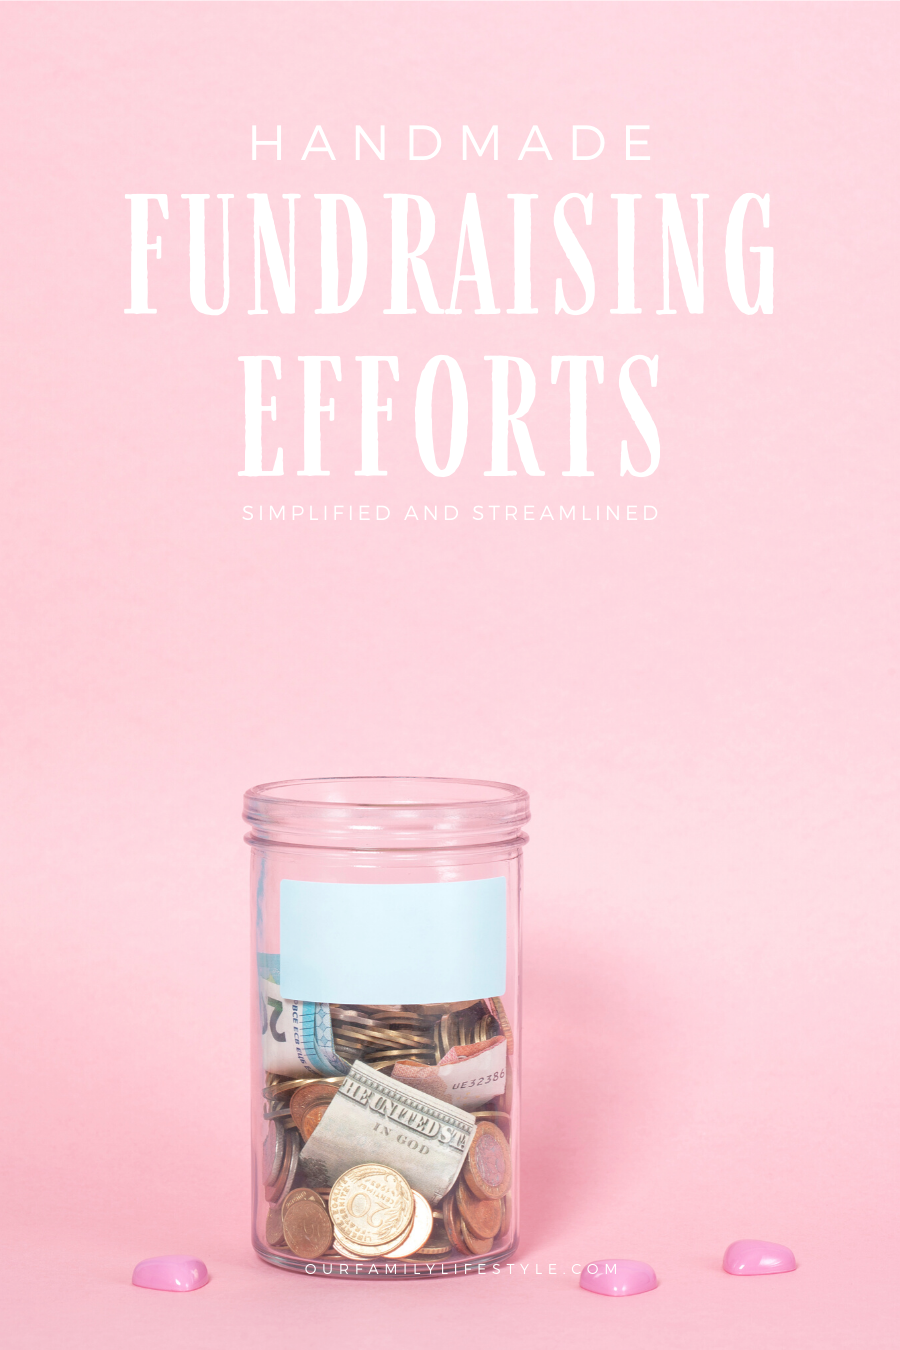 Handmade Fundraising Efforts Simplified and Streamlined